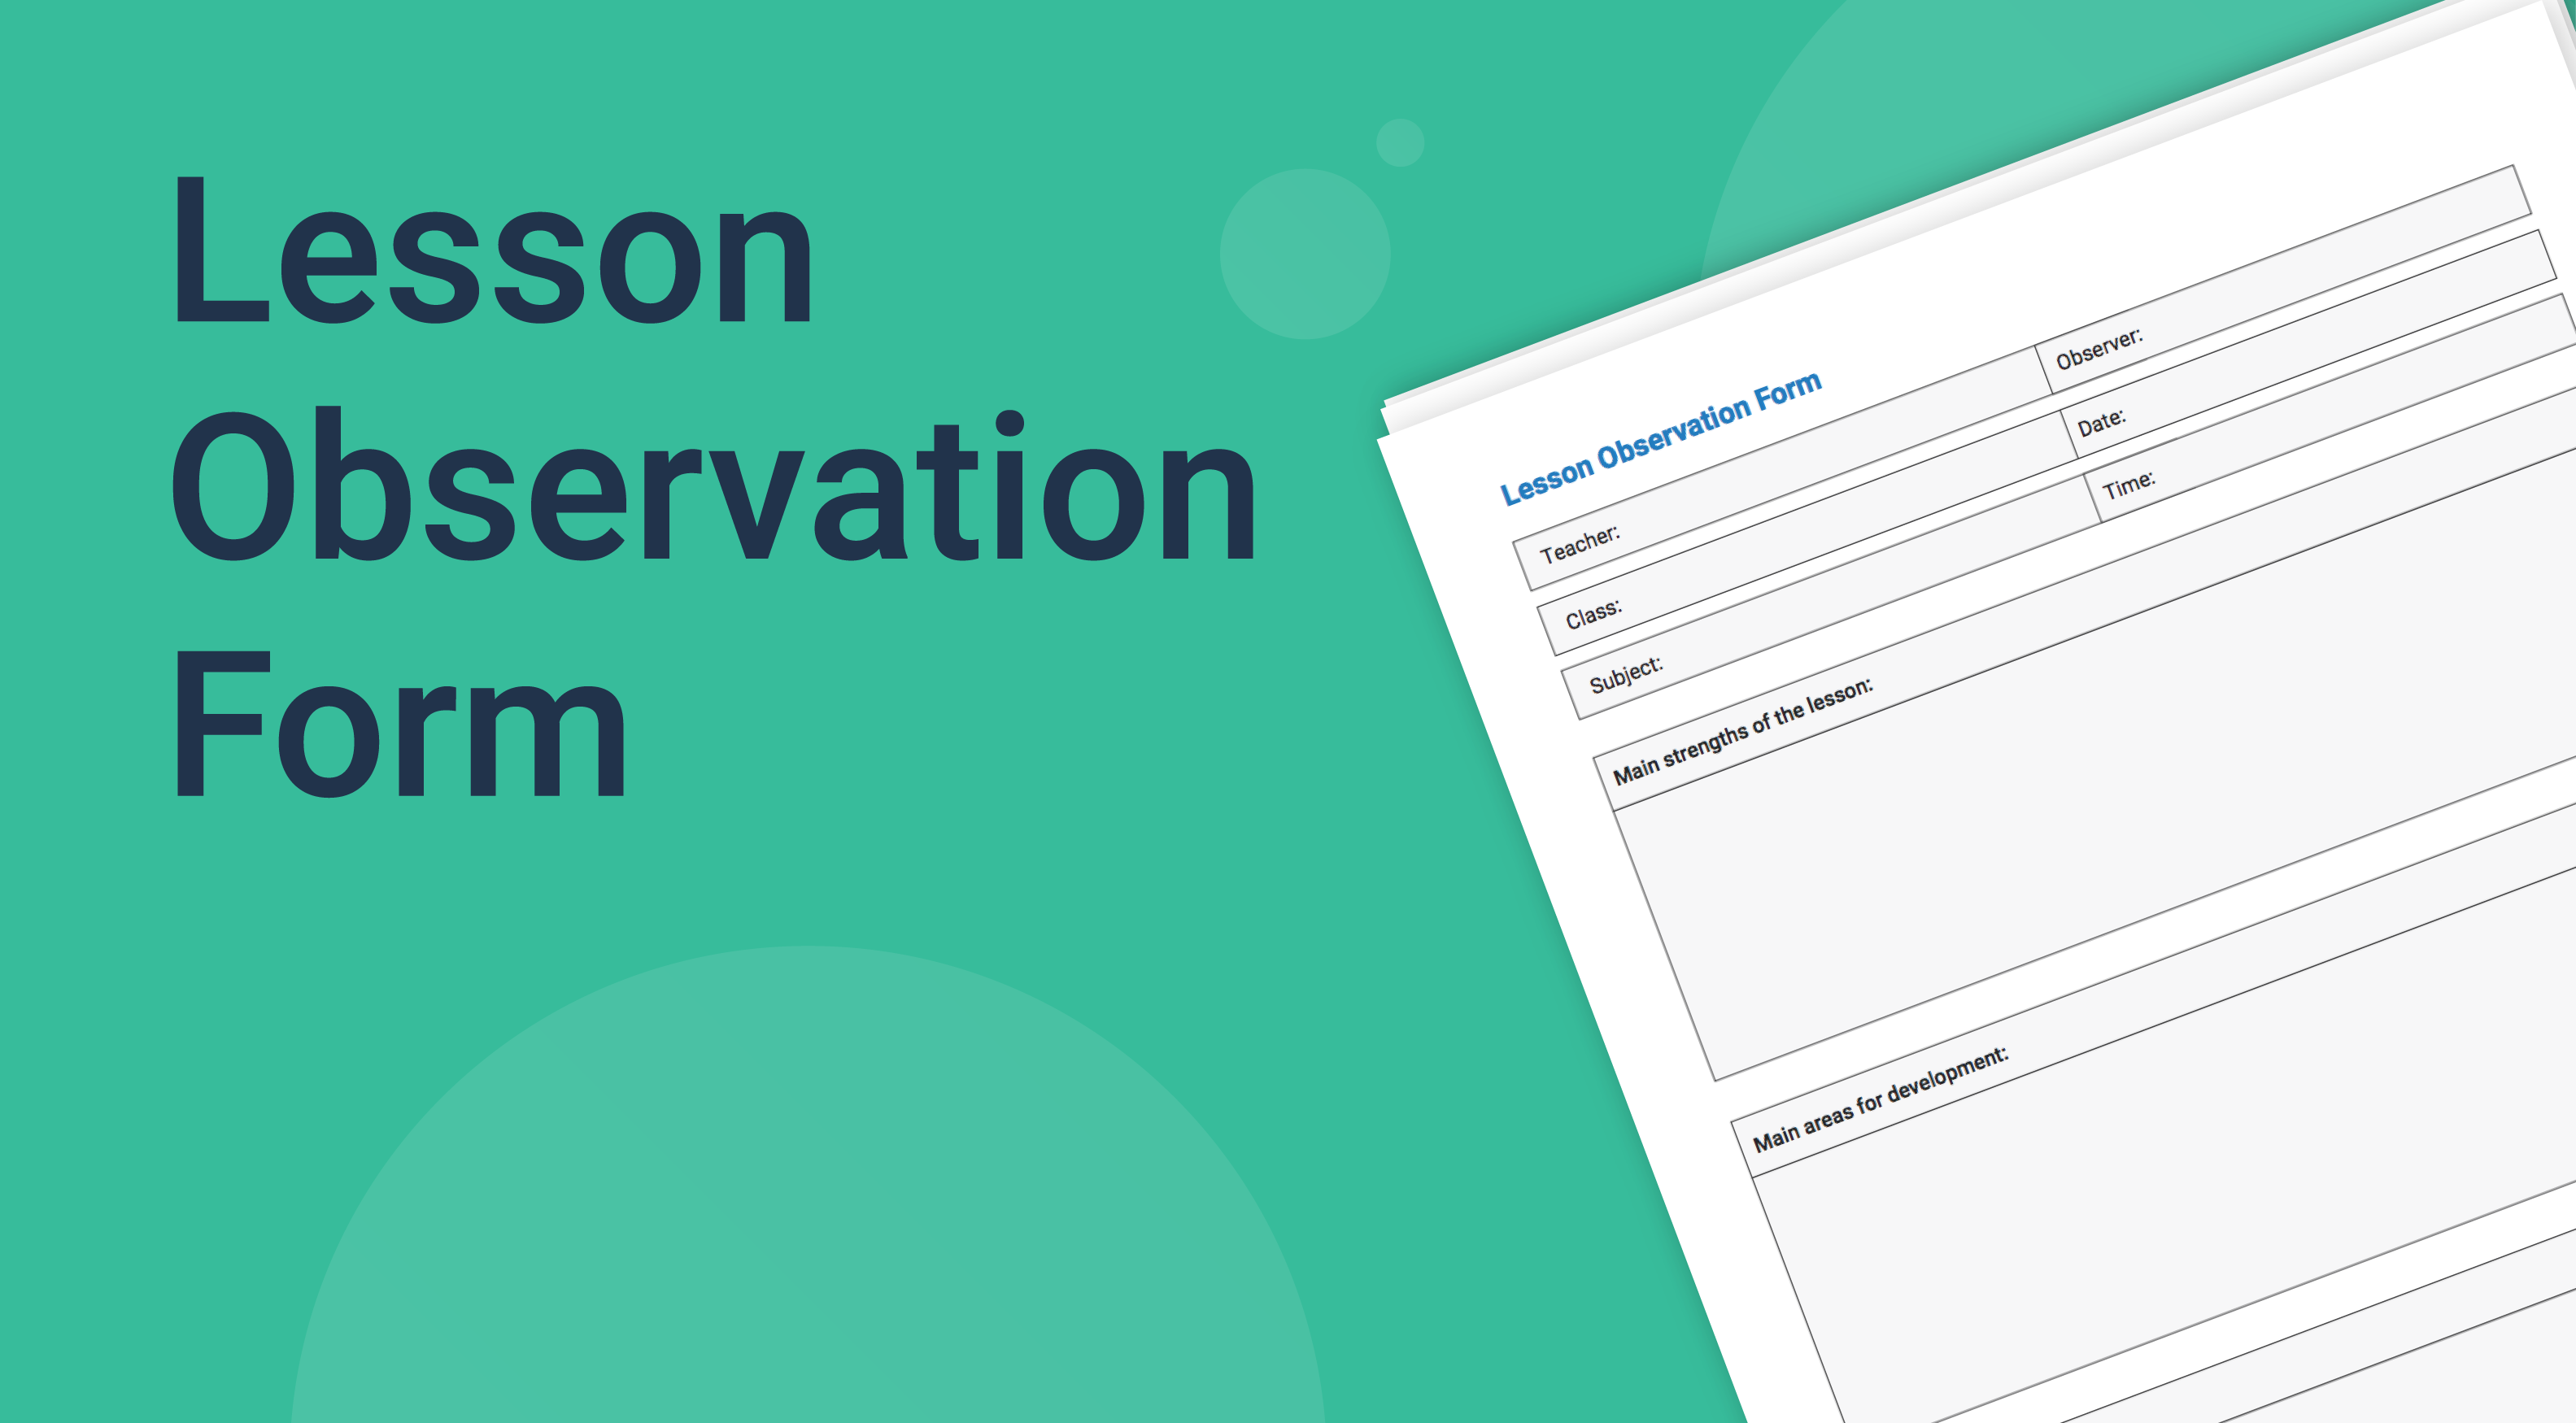 Lesson Observation Form